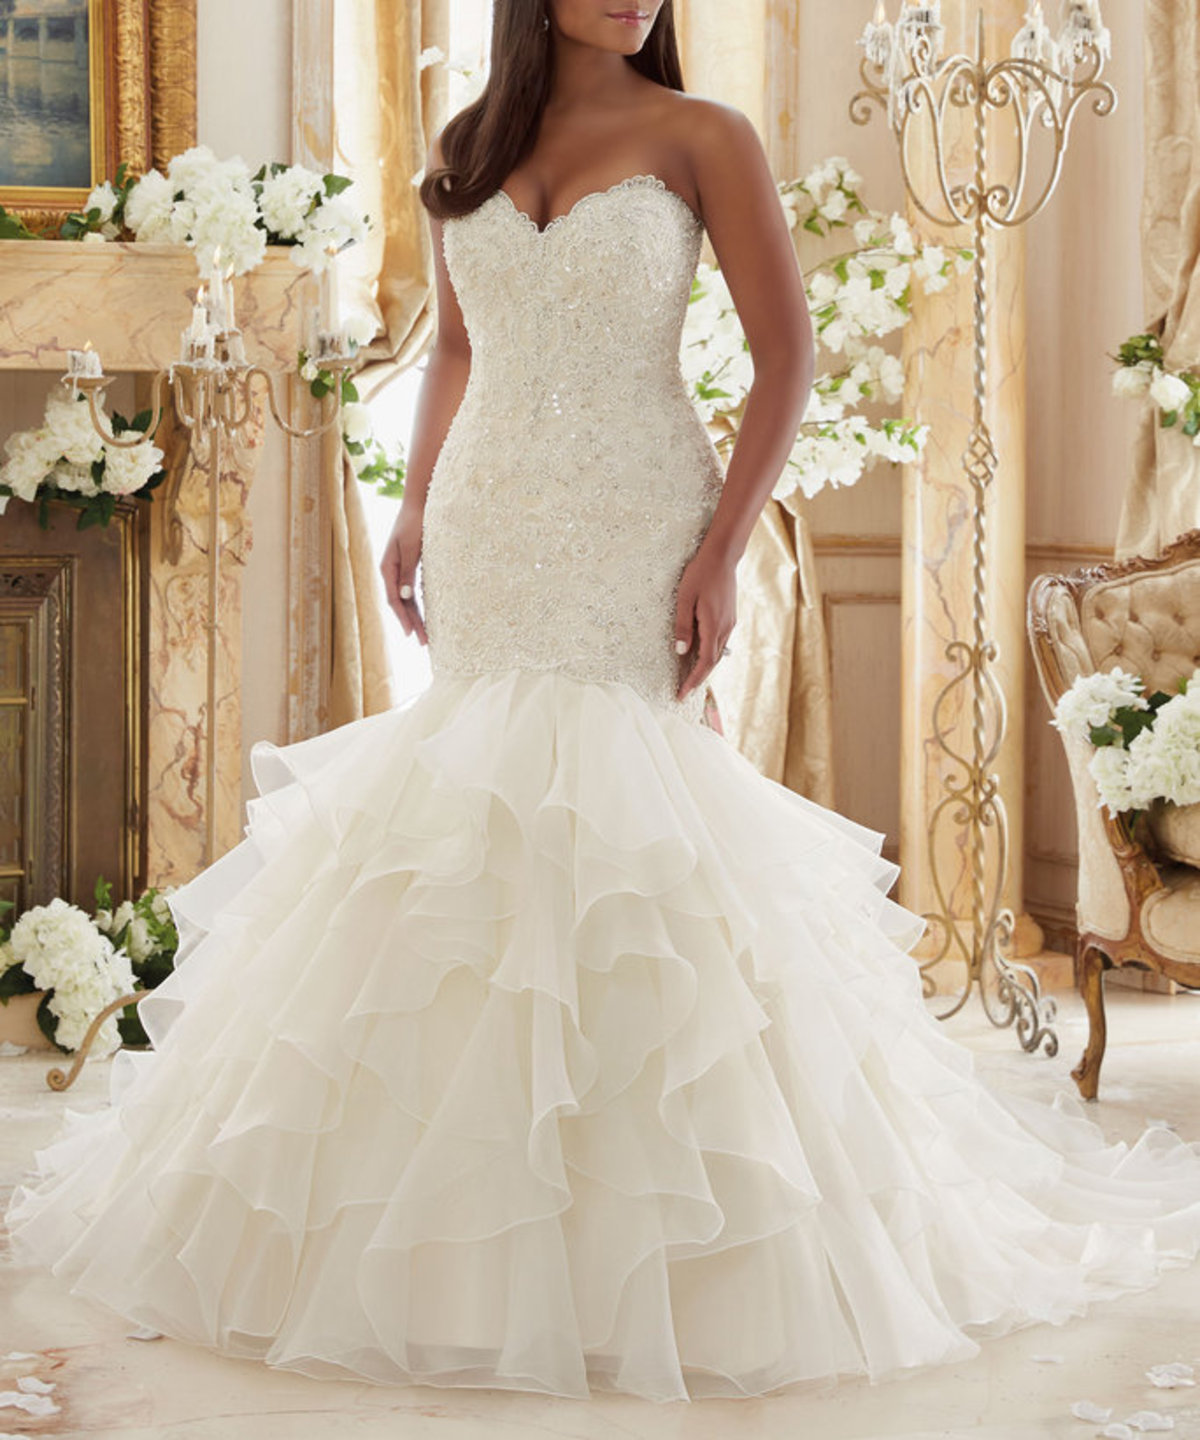 102416-plus-size-wedding-dress-lead